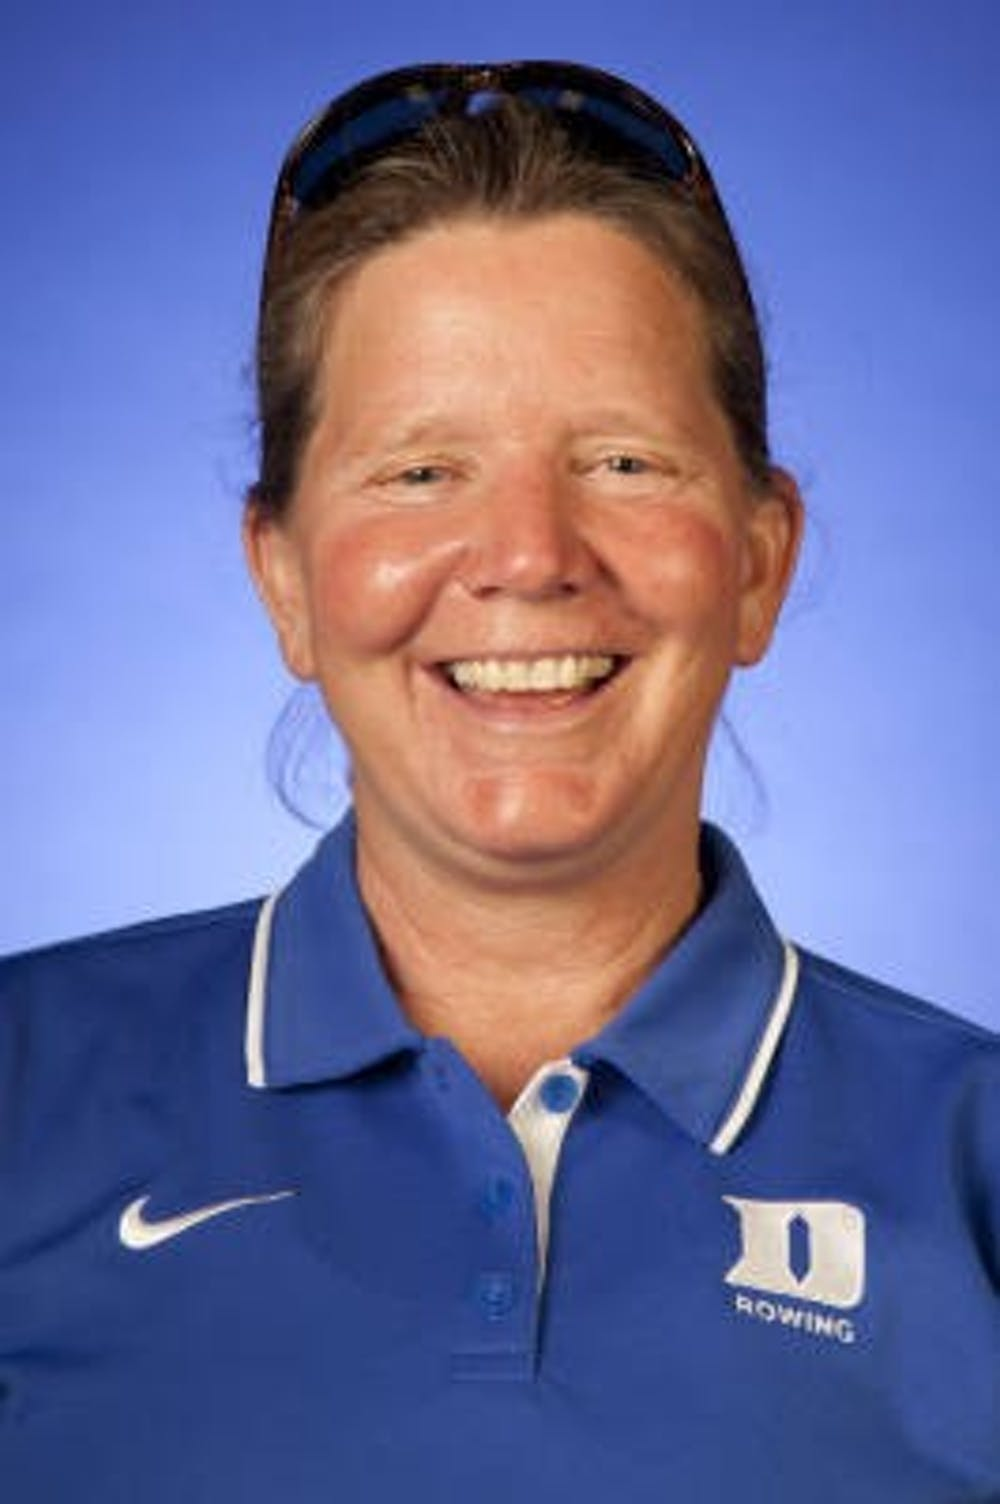 After growing the rowing program from its start in 1998, head coach Robyn Horner is retiring.